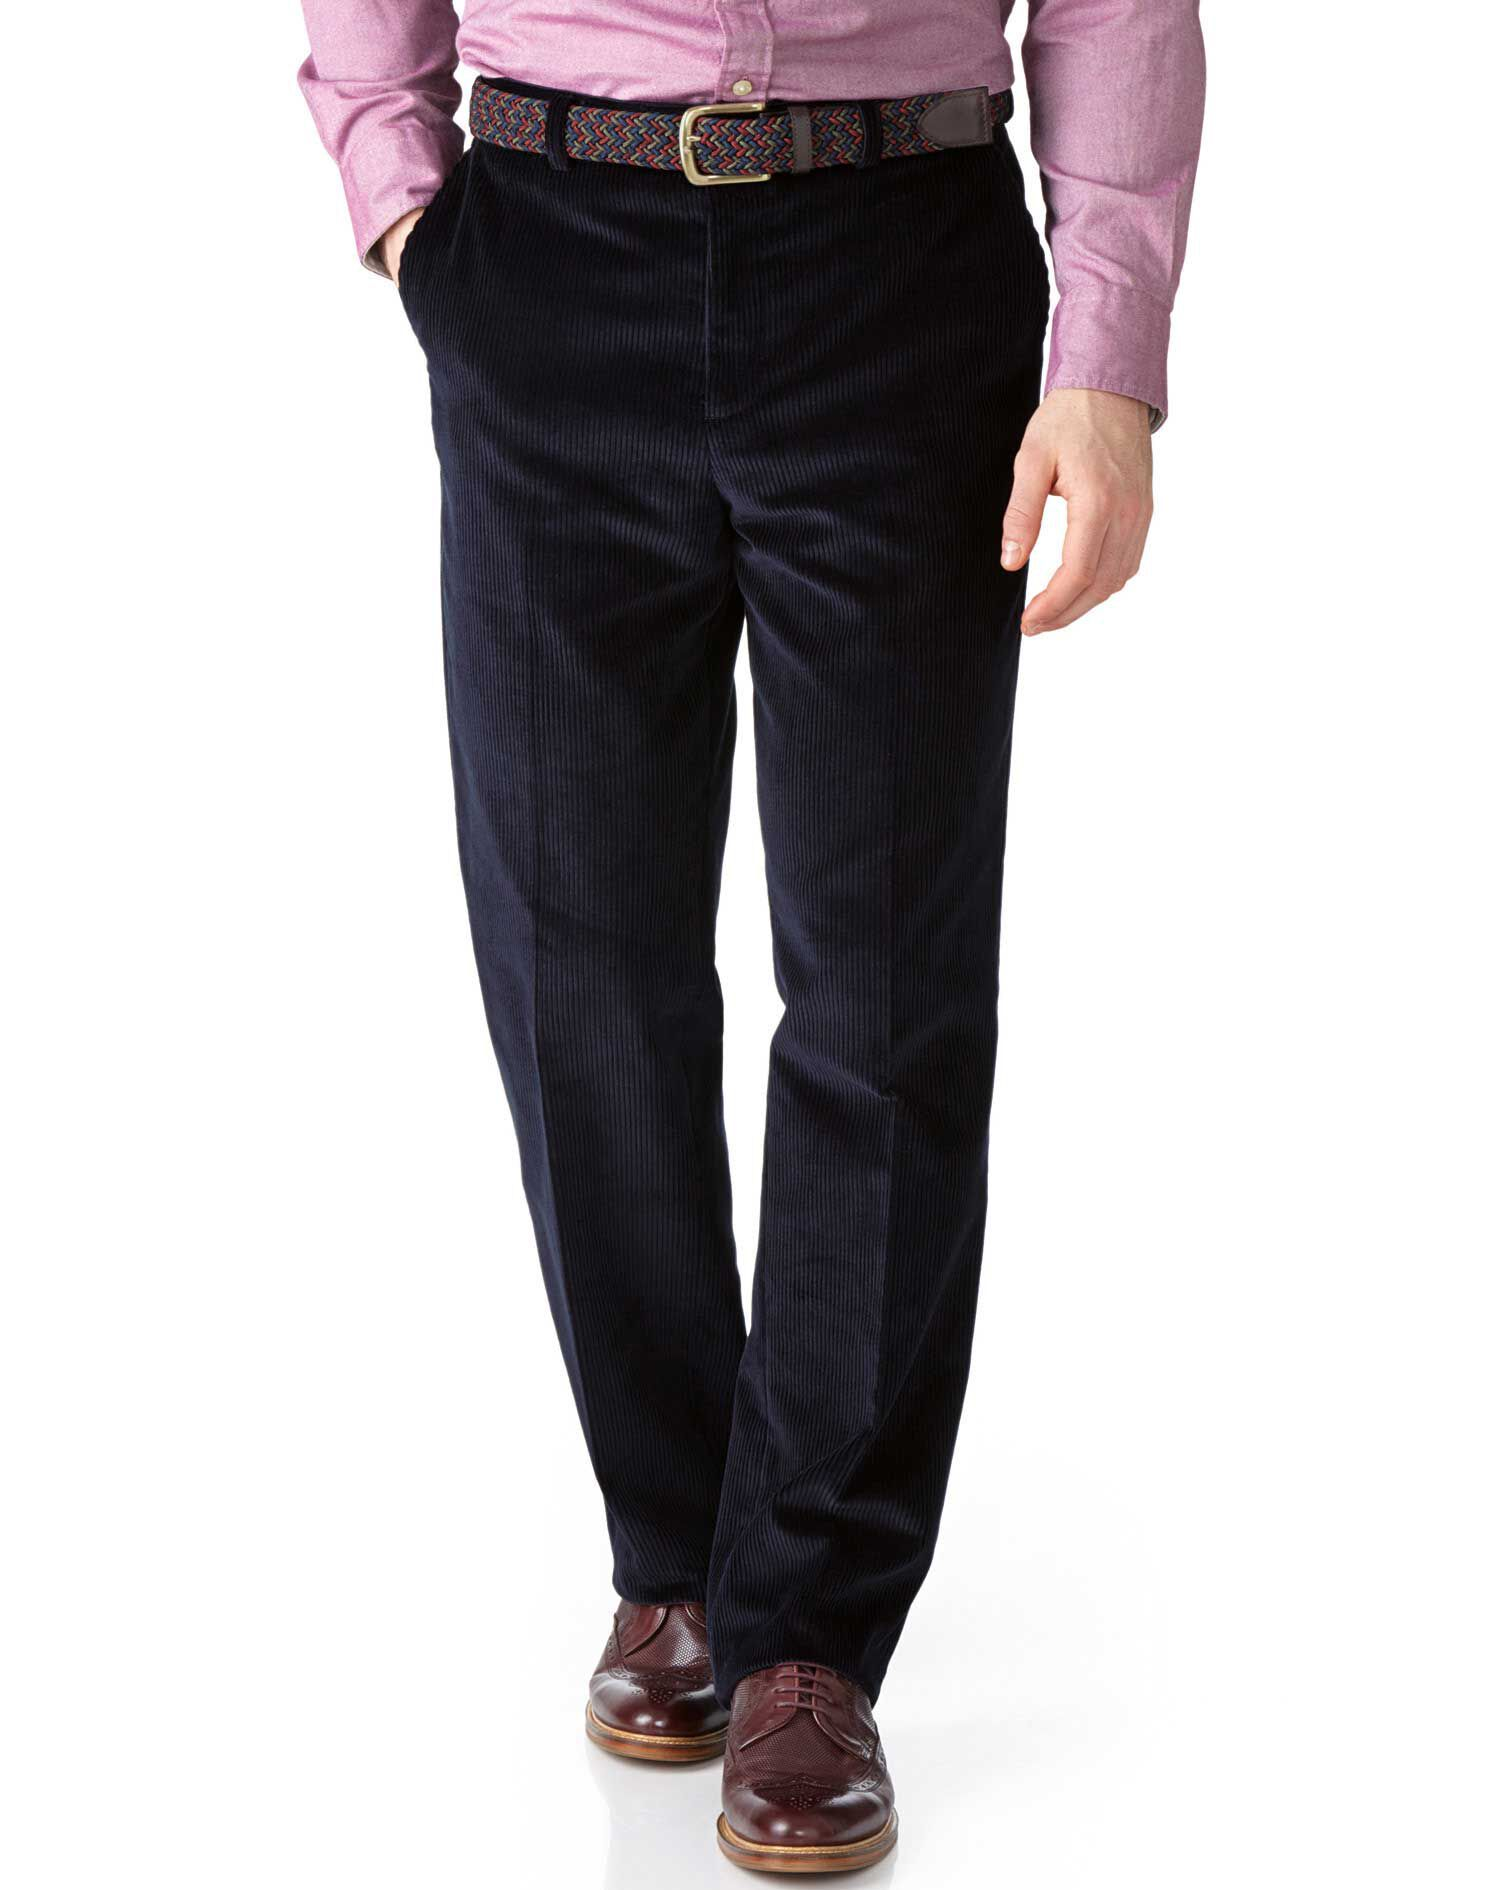 Navy Classic Fit Jumbo Cord Trousers Size W34 L34 by Charles Tyrwhitt